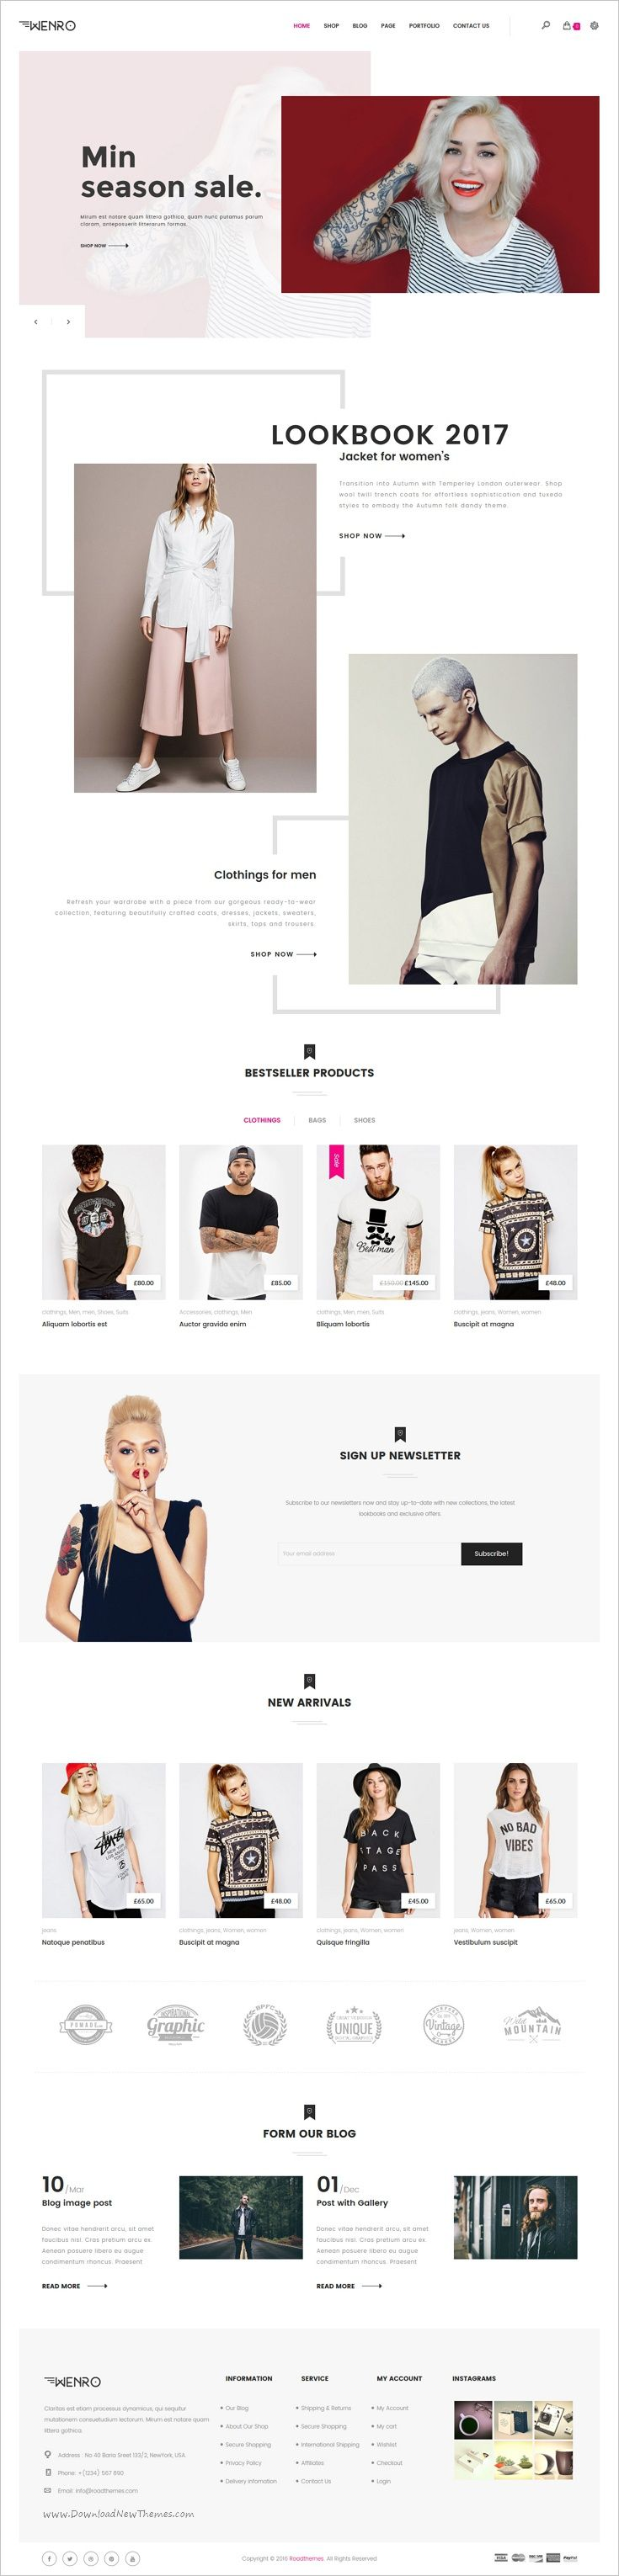 Wenro is a wonderful responsive WooCommerce #WordPress theme for multipurpose #fashion #shop eCommerce website with 15+ stunning homepage layouts download now➩ https://themeforest.net/item/wenro-multipurpose-woocommerce-wordpress-theme/18312301?ref=Datasata